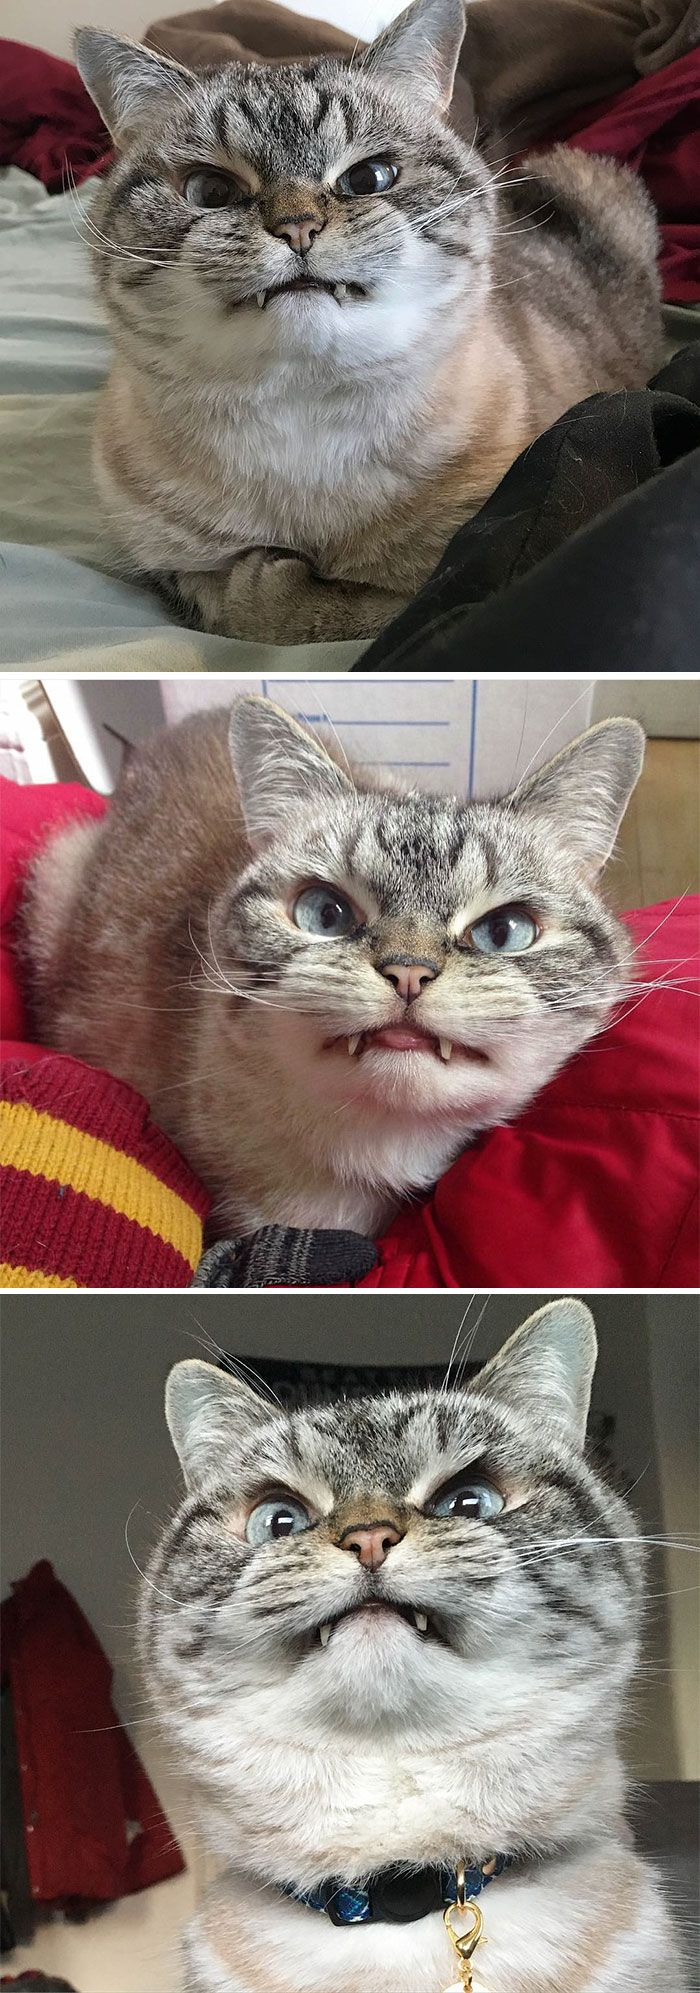 10+ Of The Word's Angriest Cats Ever Who Have Had Enough Of Your BS | Bored Panda